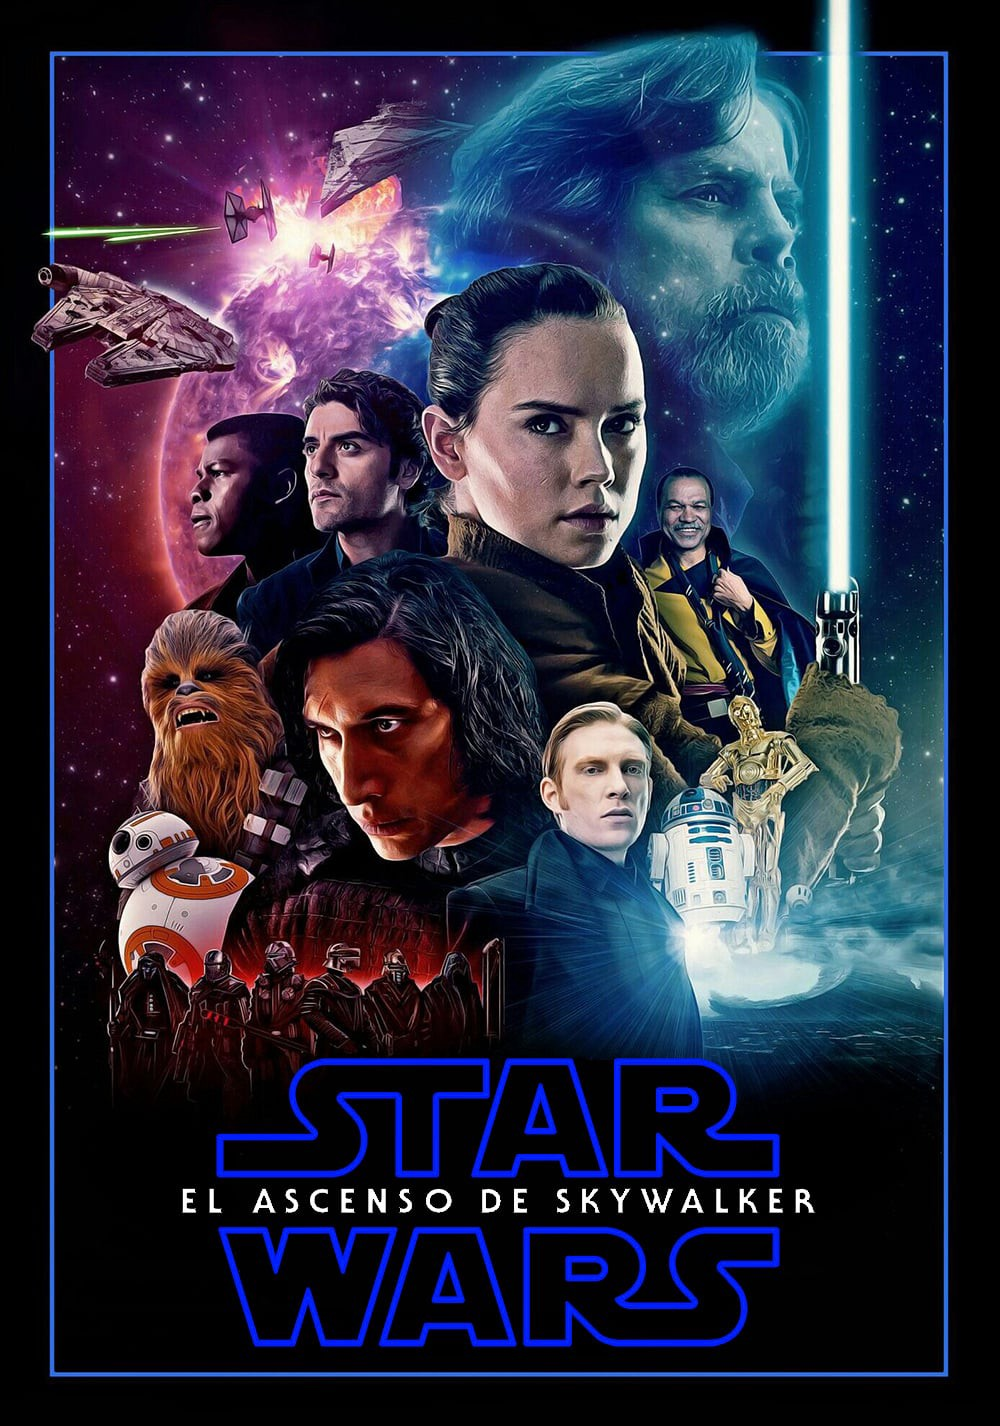 Repelis Ver Star Wars El Ascenso De Skywalker 2019 P E L I C U L A Completa Online Latino By Marsyaagela Medium